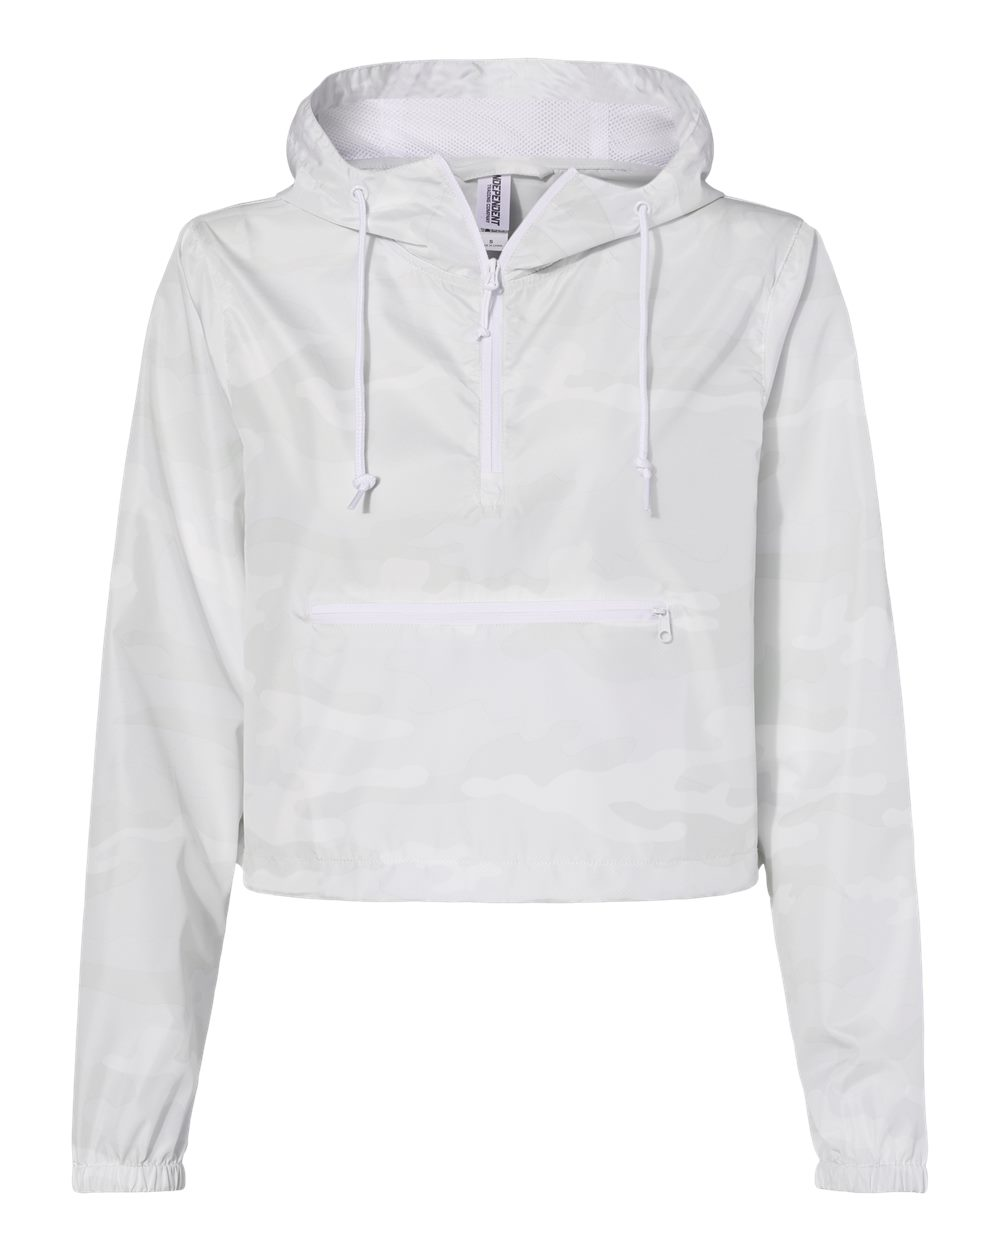 Independent Ladies' Cropped Windbreaker